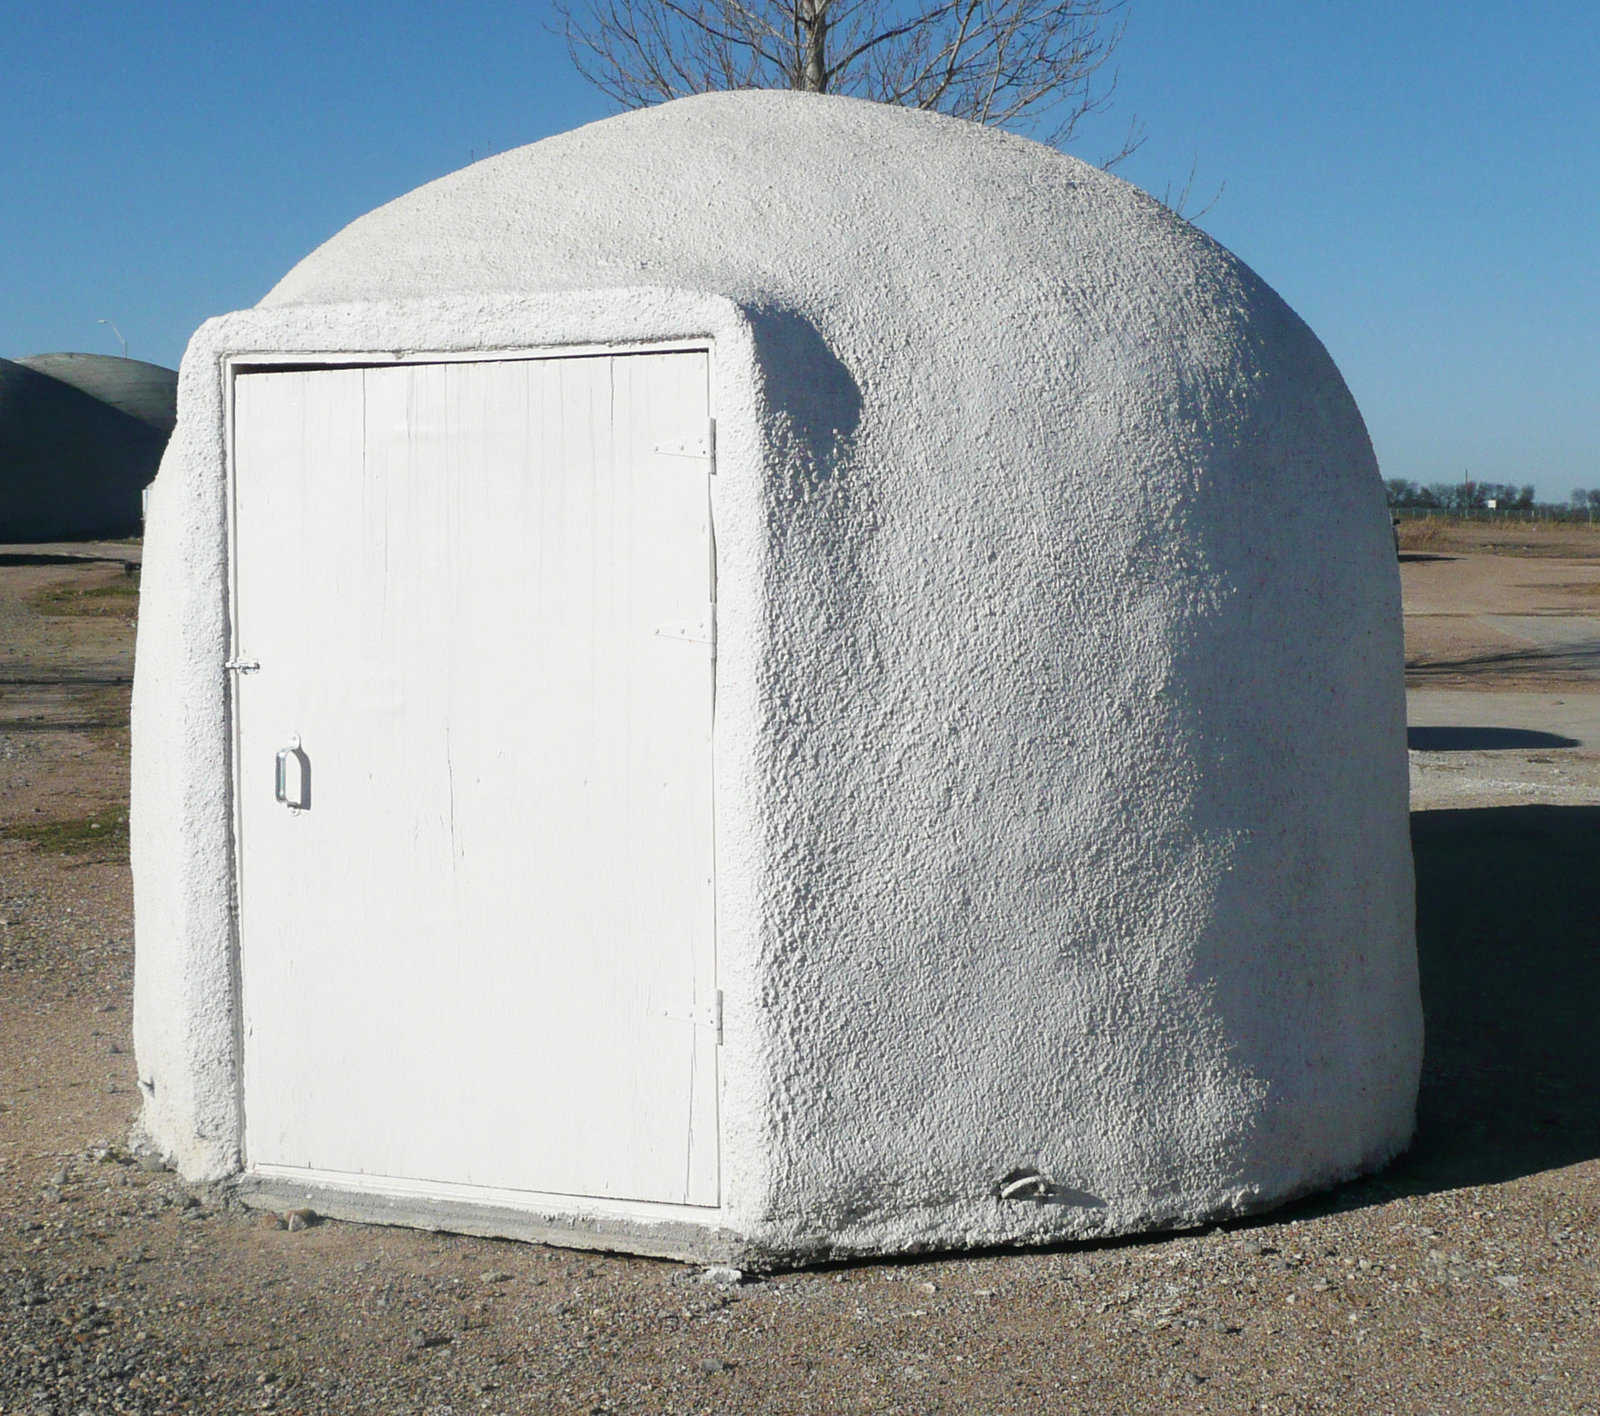 Construction Concrete Dome Home: Can EcoShells Be Insulated?